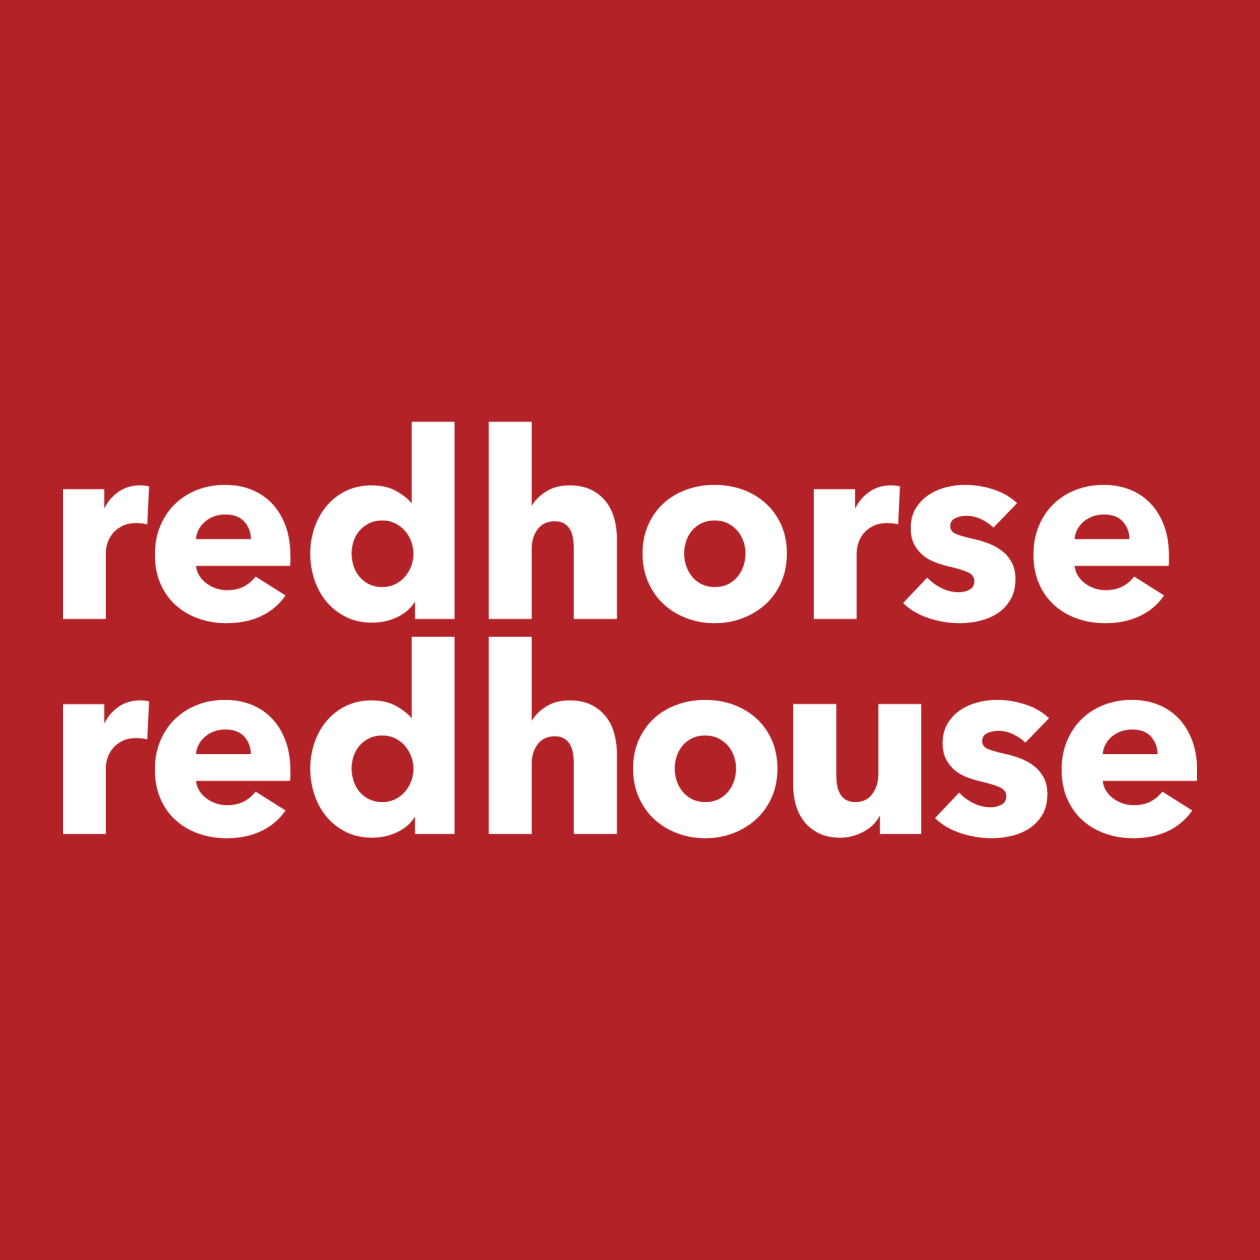 jason-b-graham-redhorse-redhouse-icon